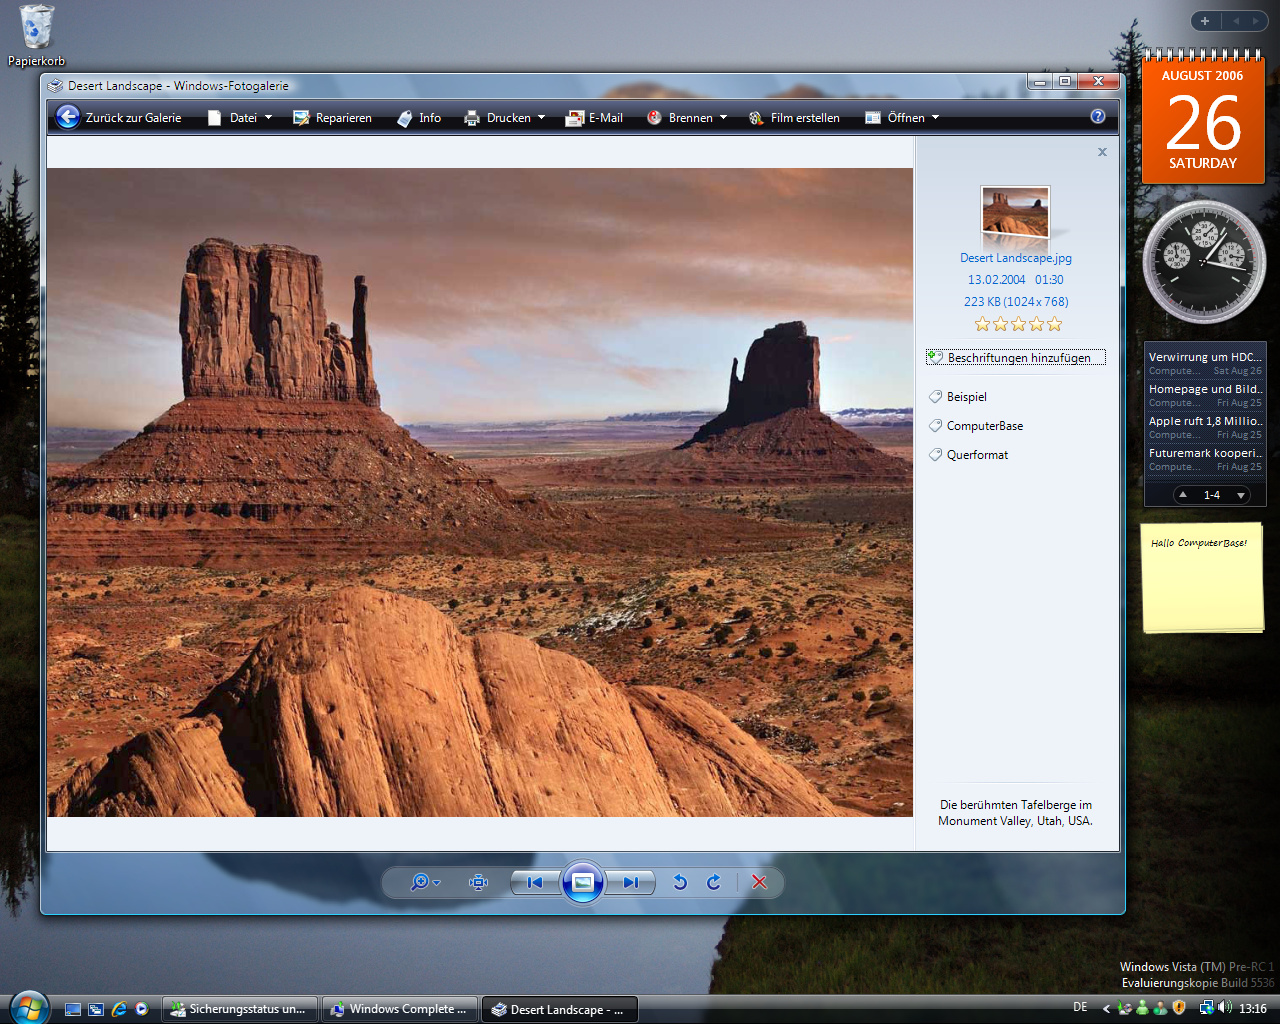 Windows Vista Build 5536 - Fotogalerie